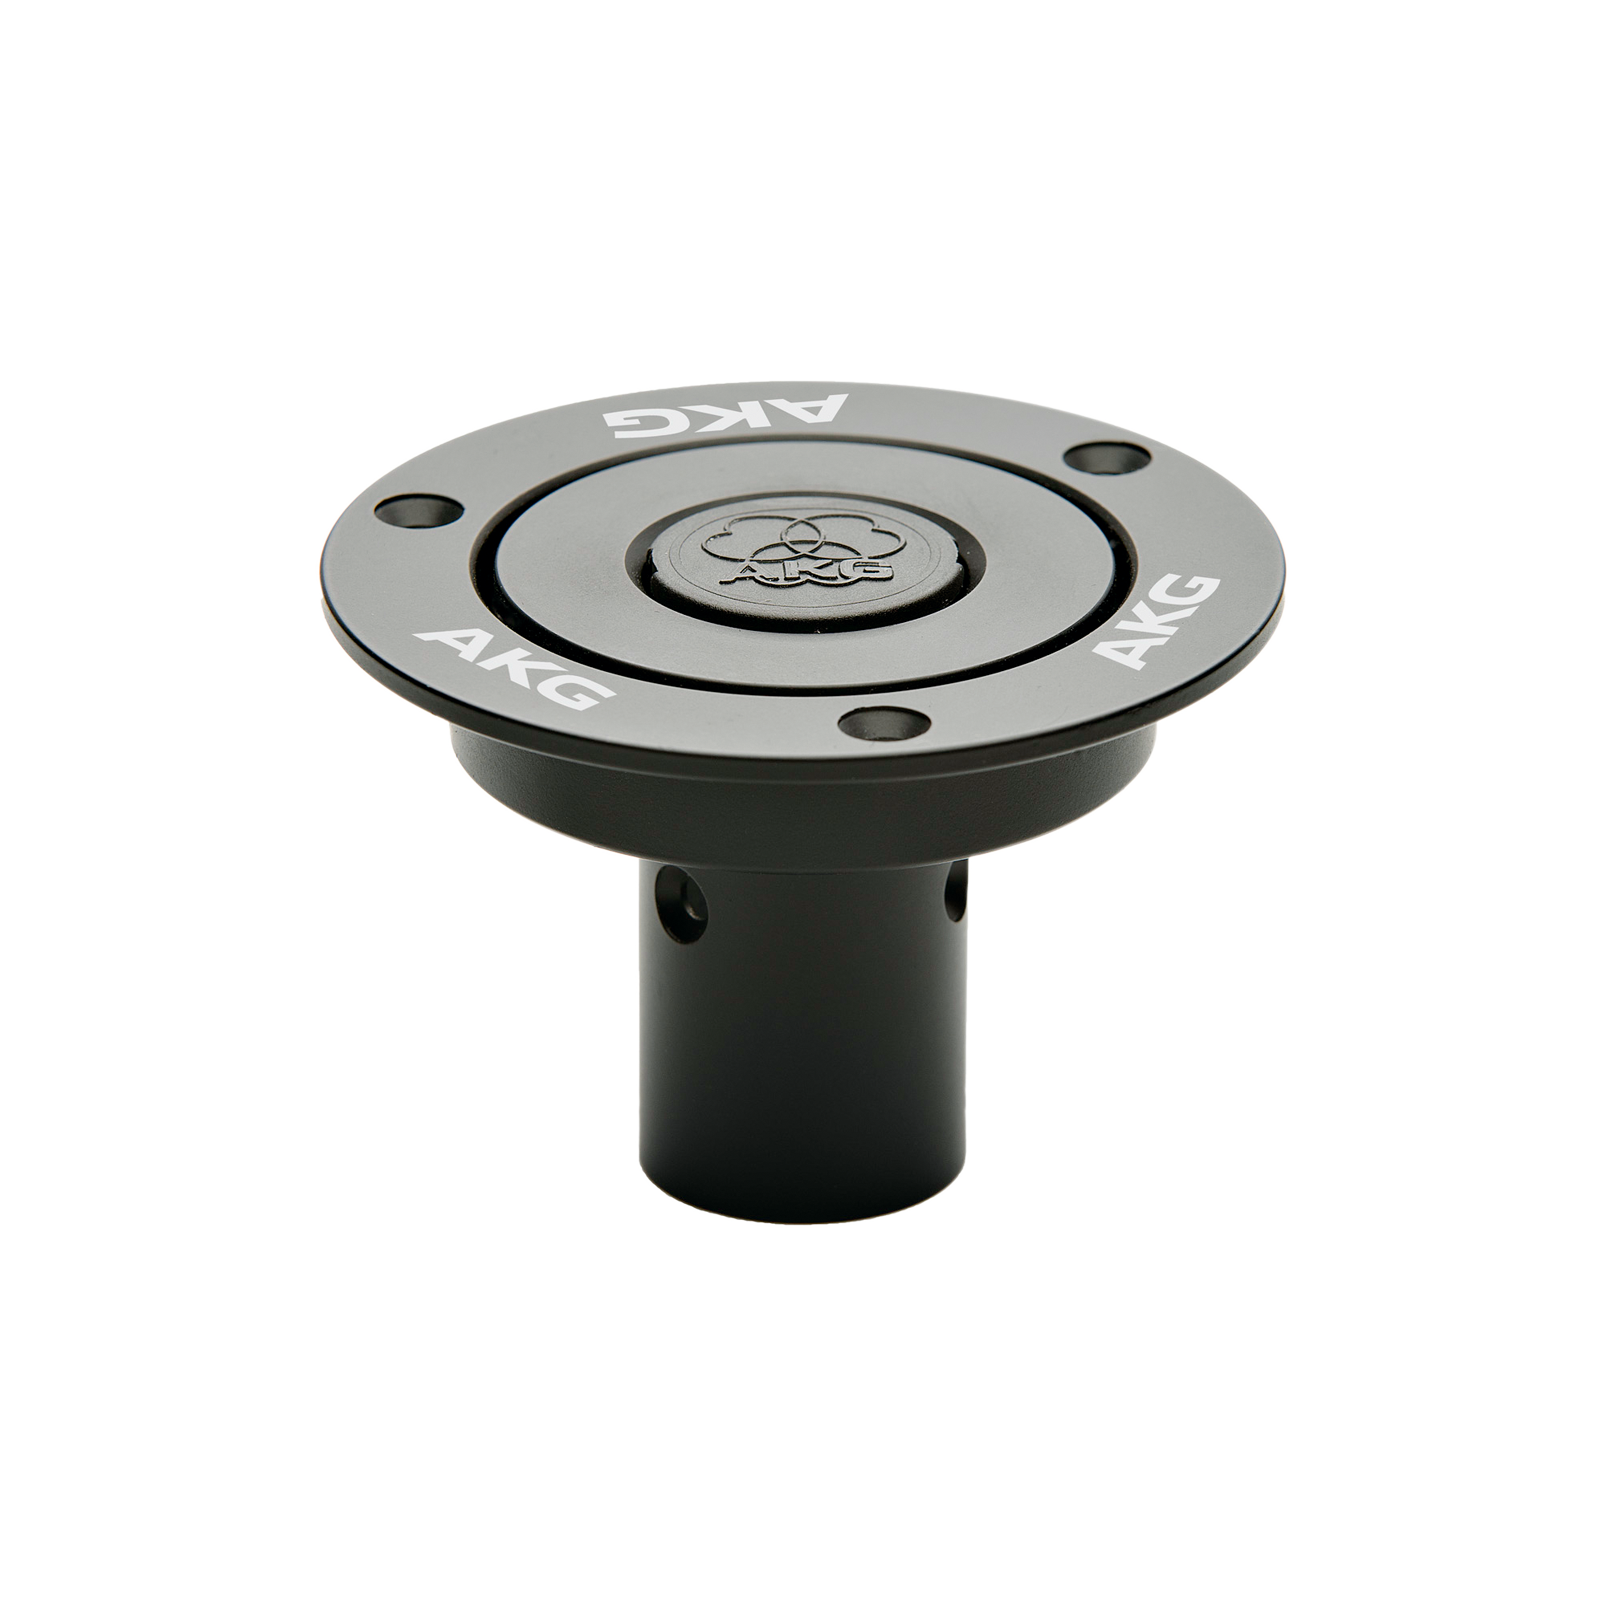 MF M - Black - Mounting flange for use with DAM+ Microphone series - Hero